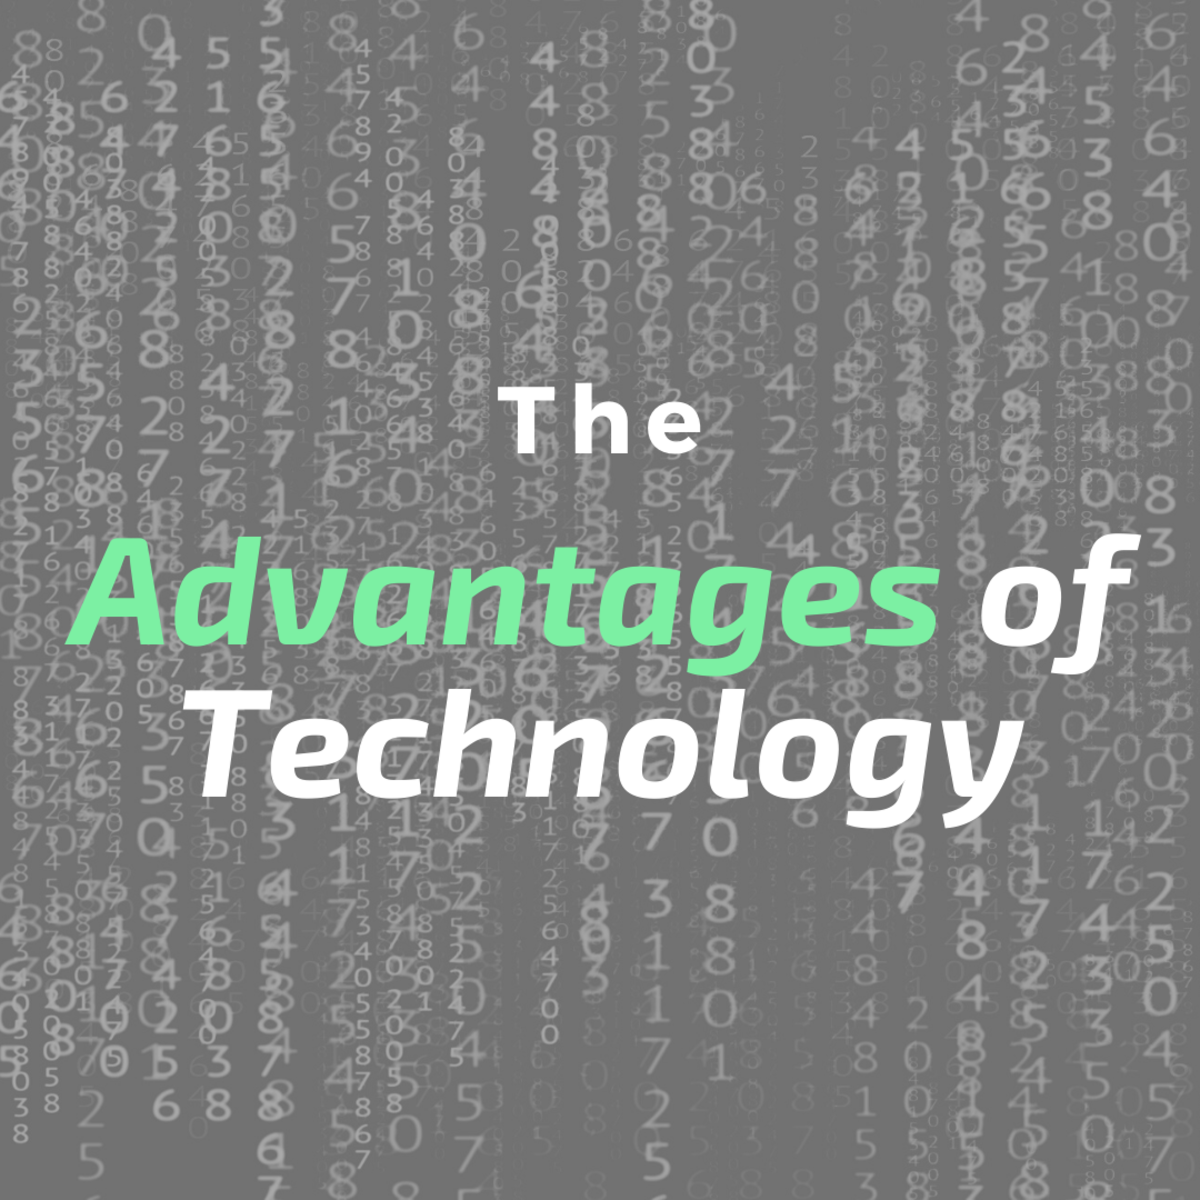 Here are several examples of how technology is improving the world.